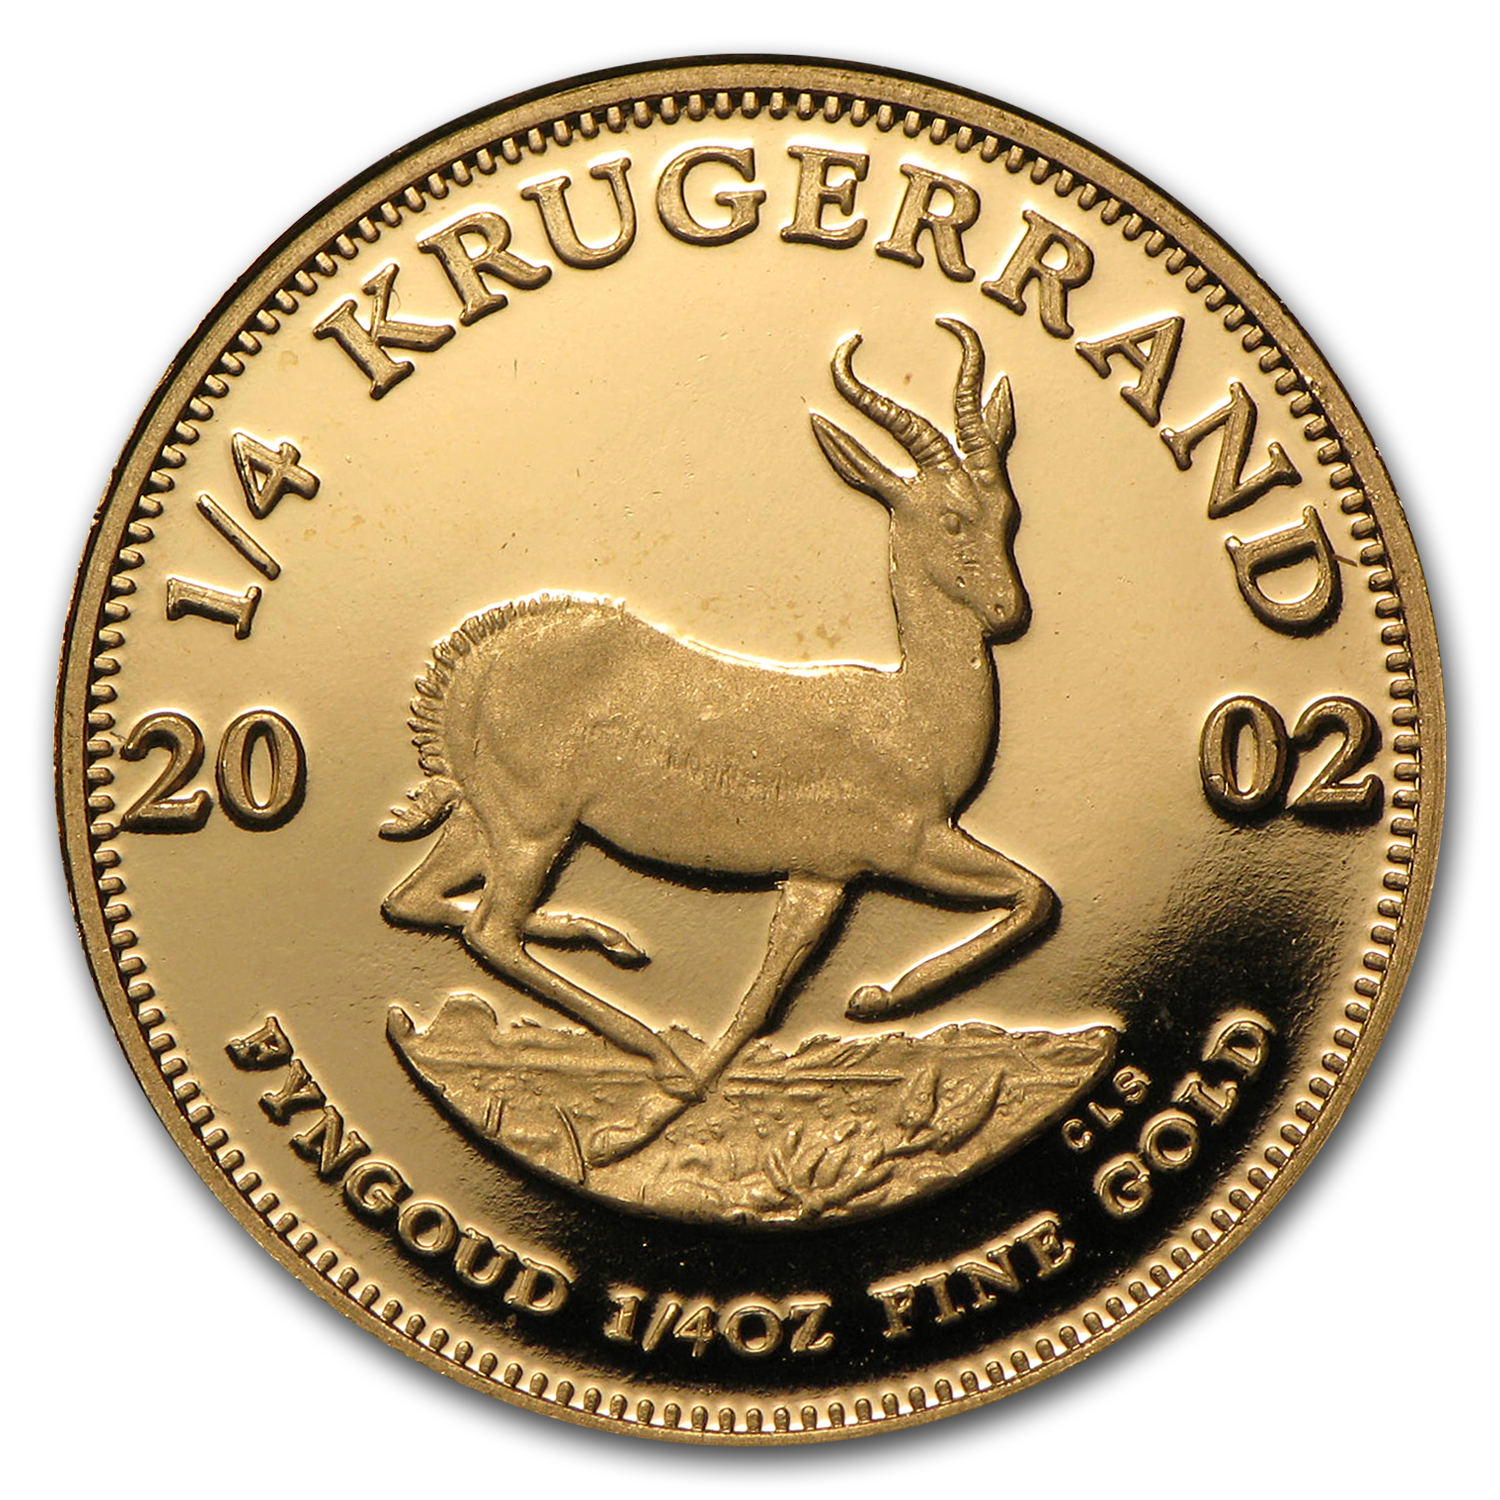 2002 South Africa 1/4 oz Proof Gold Krugerrand